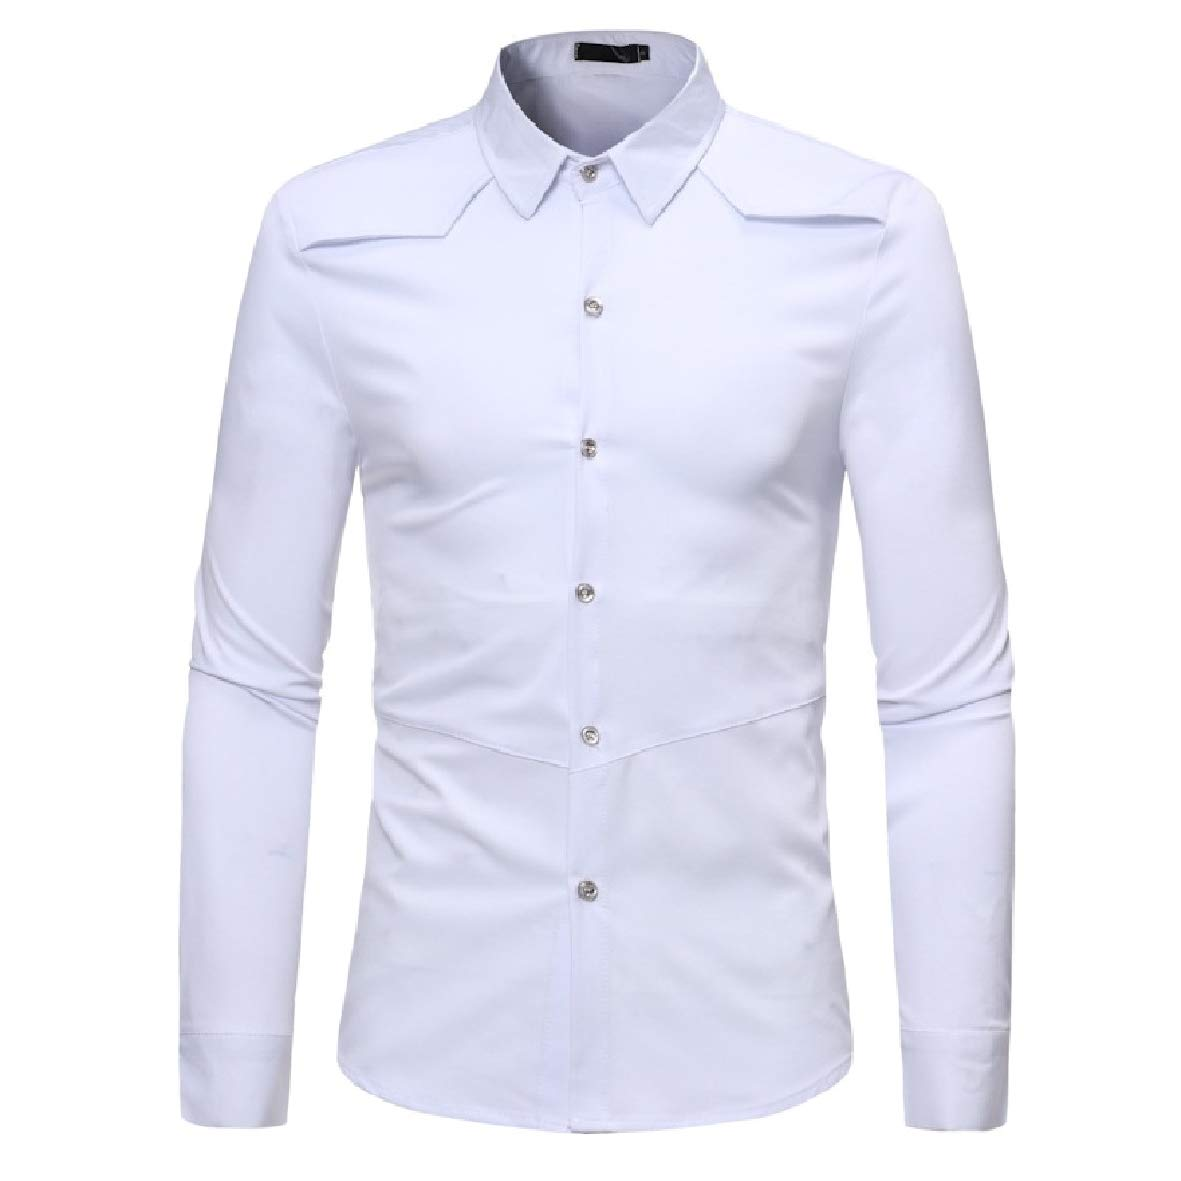 Tootless-Men Pure Simple Long Sleeve Casual Lapel Collar Fitted Dress Shirt